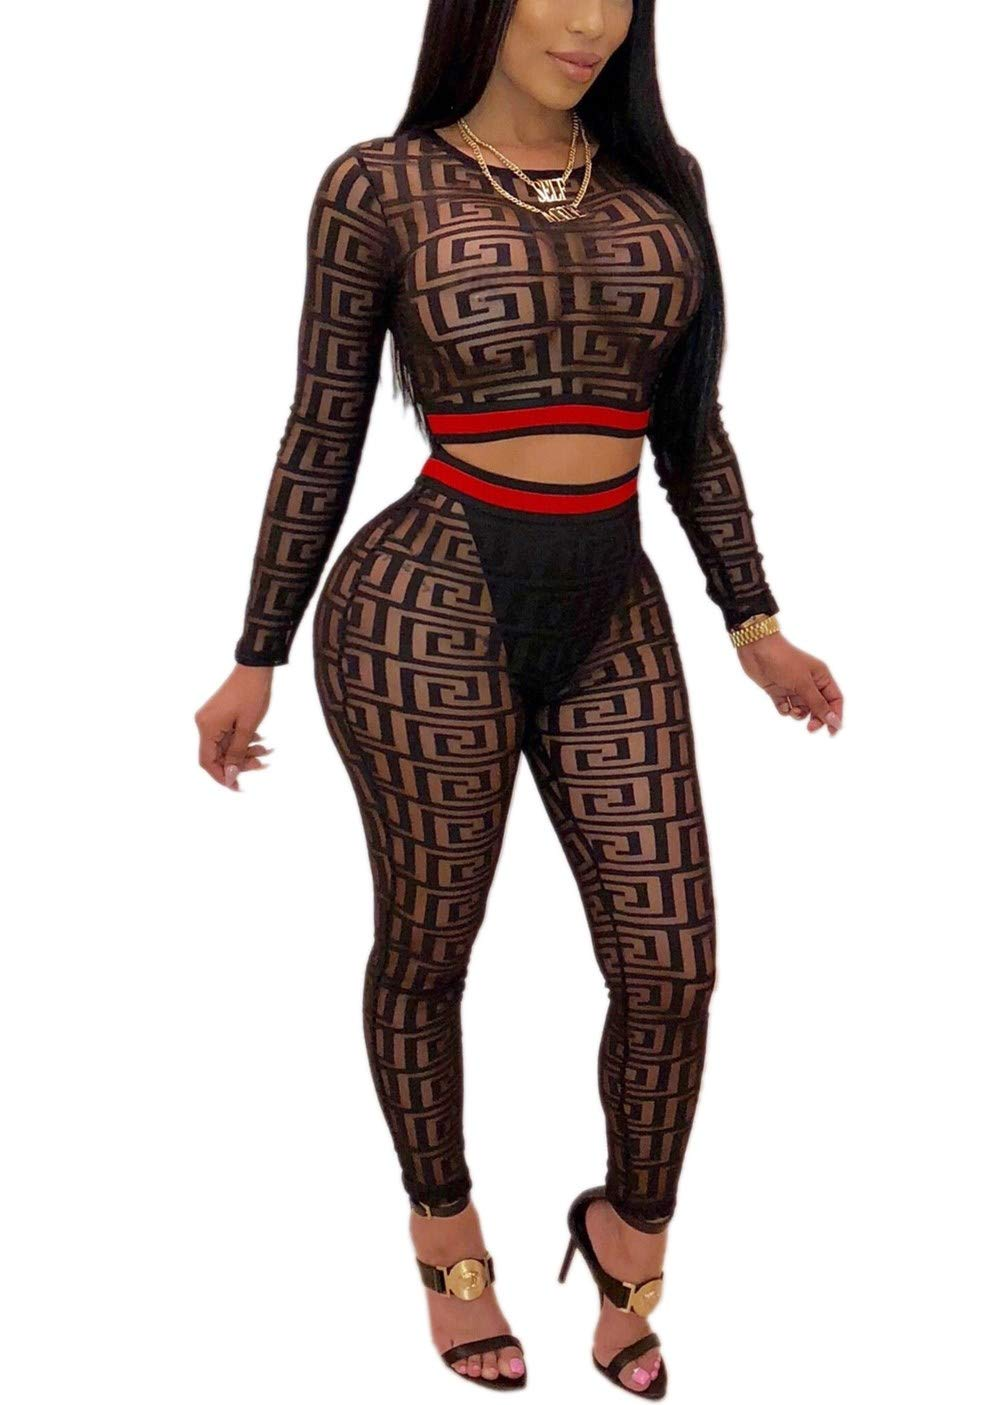 Yeshire Women's 2 Pieces Outfit Long Sleeve Mesh See Through Crop Top and Long Pants Sets Sexy Jumpsuits Clubwear Small Black